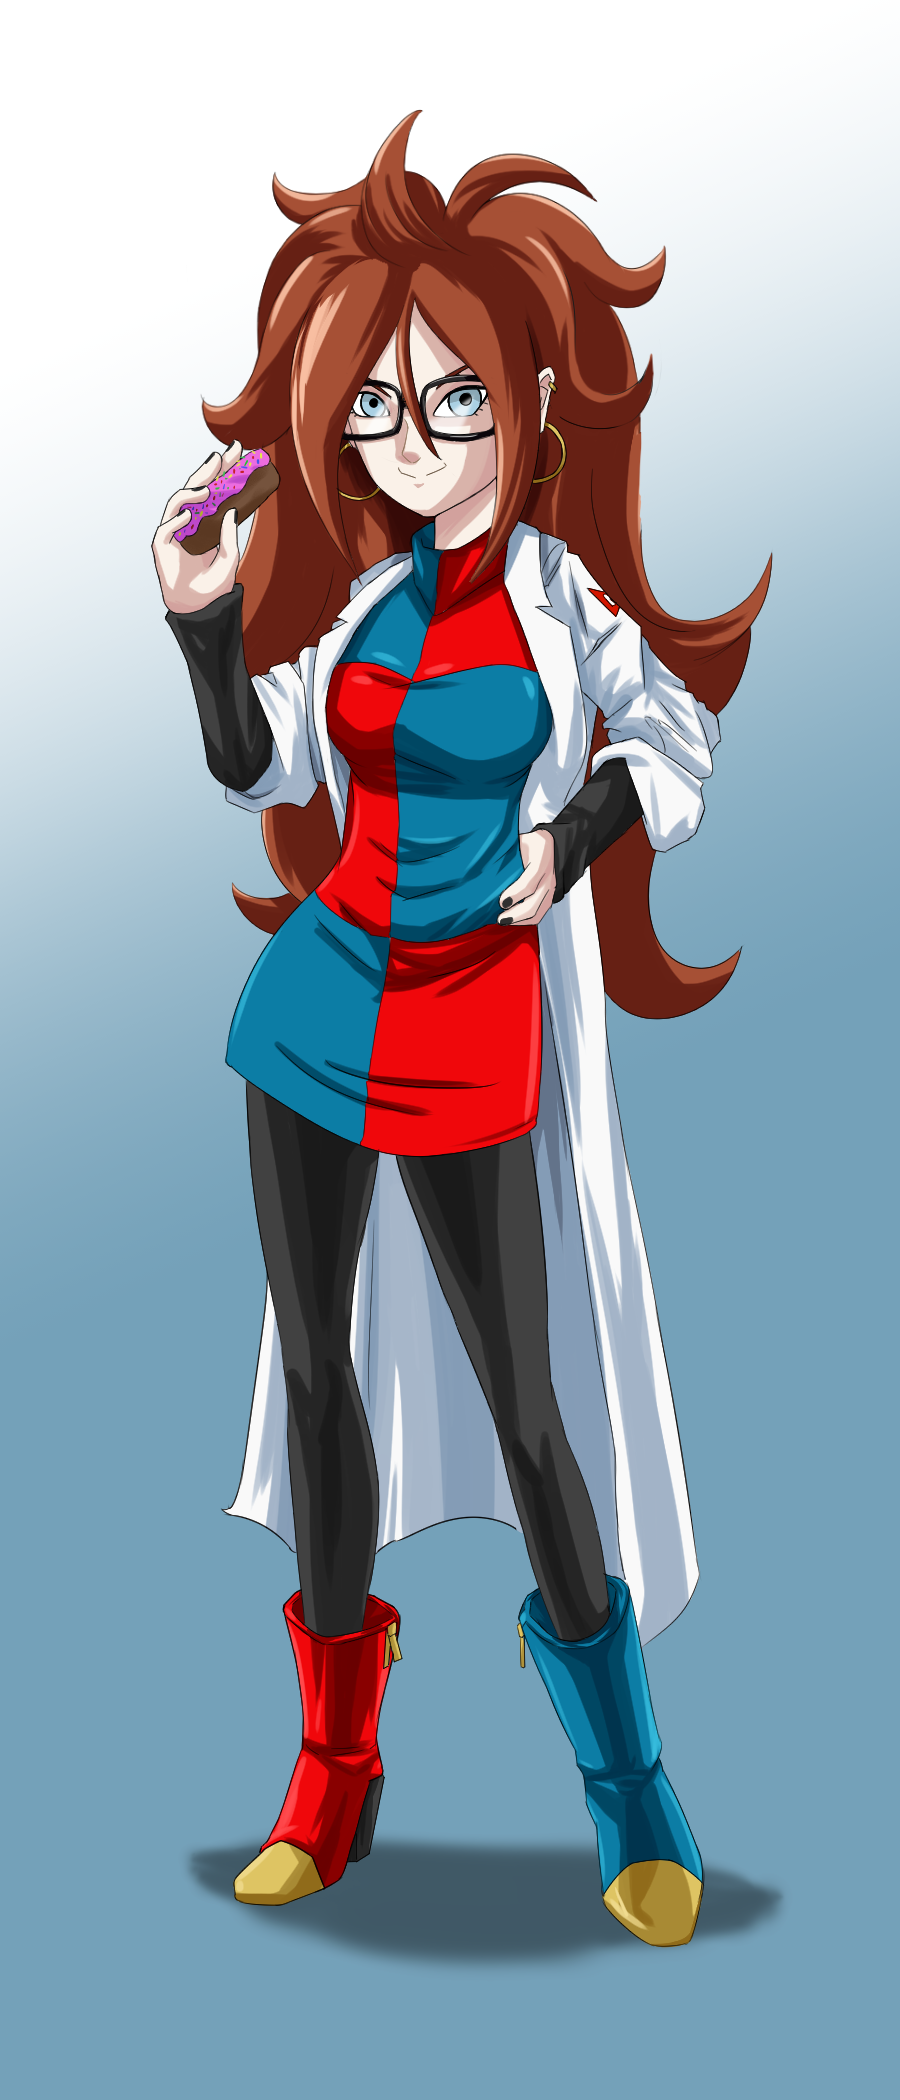 Android 21 by FieryJinx